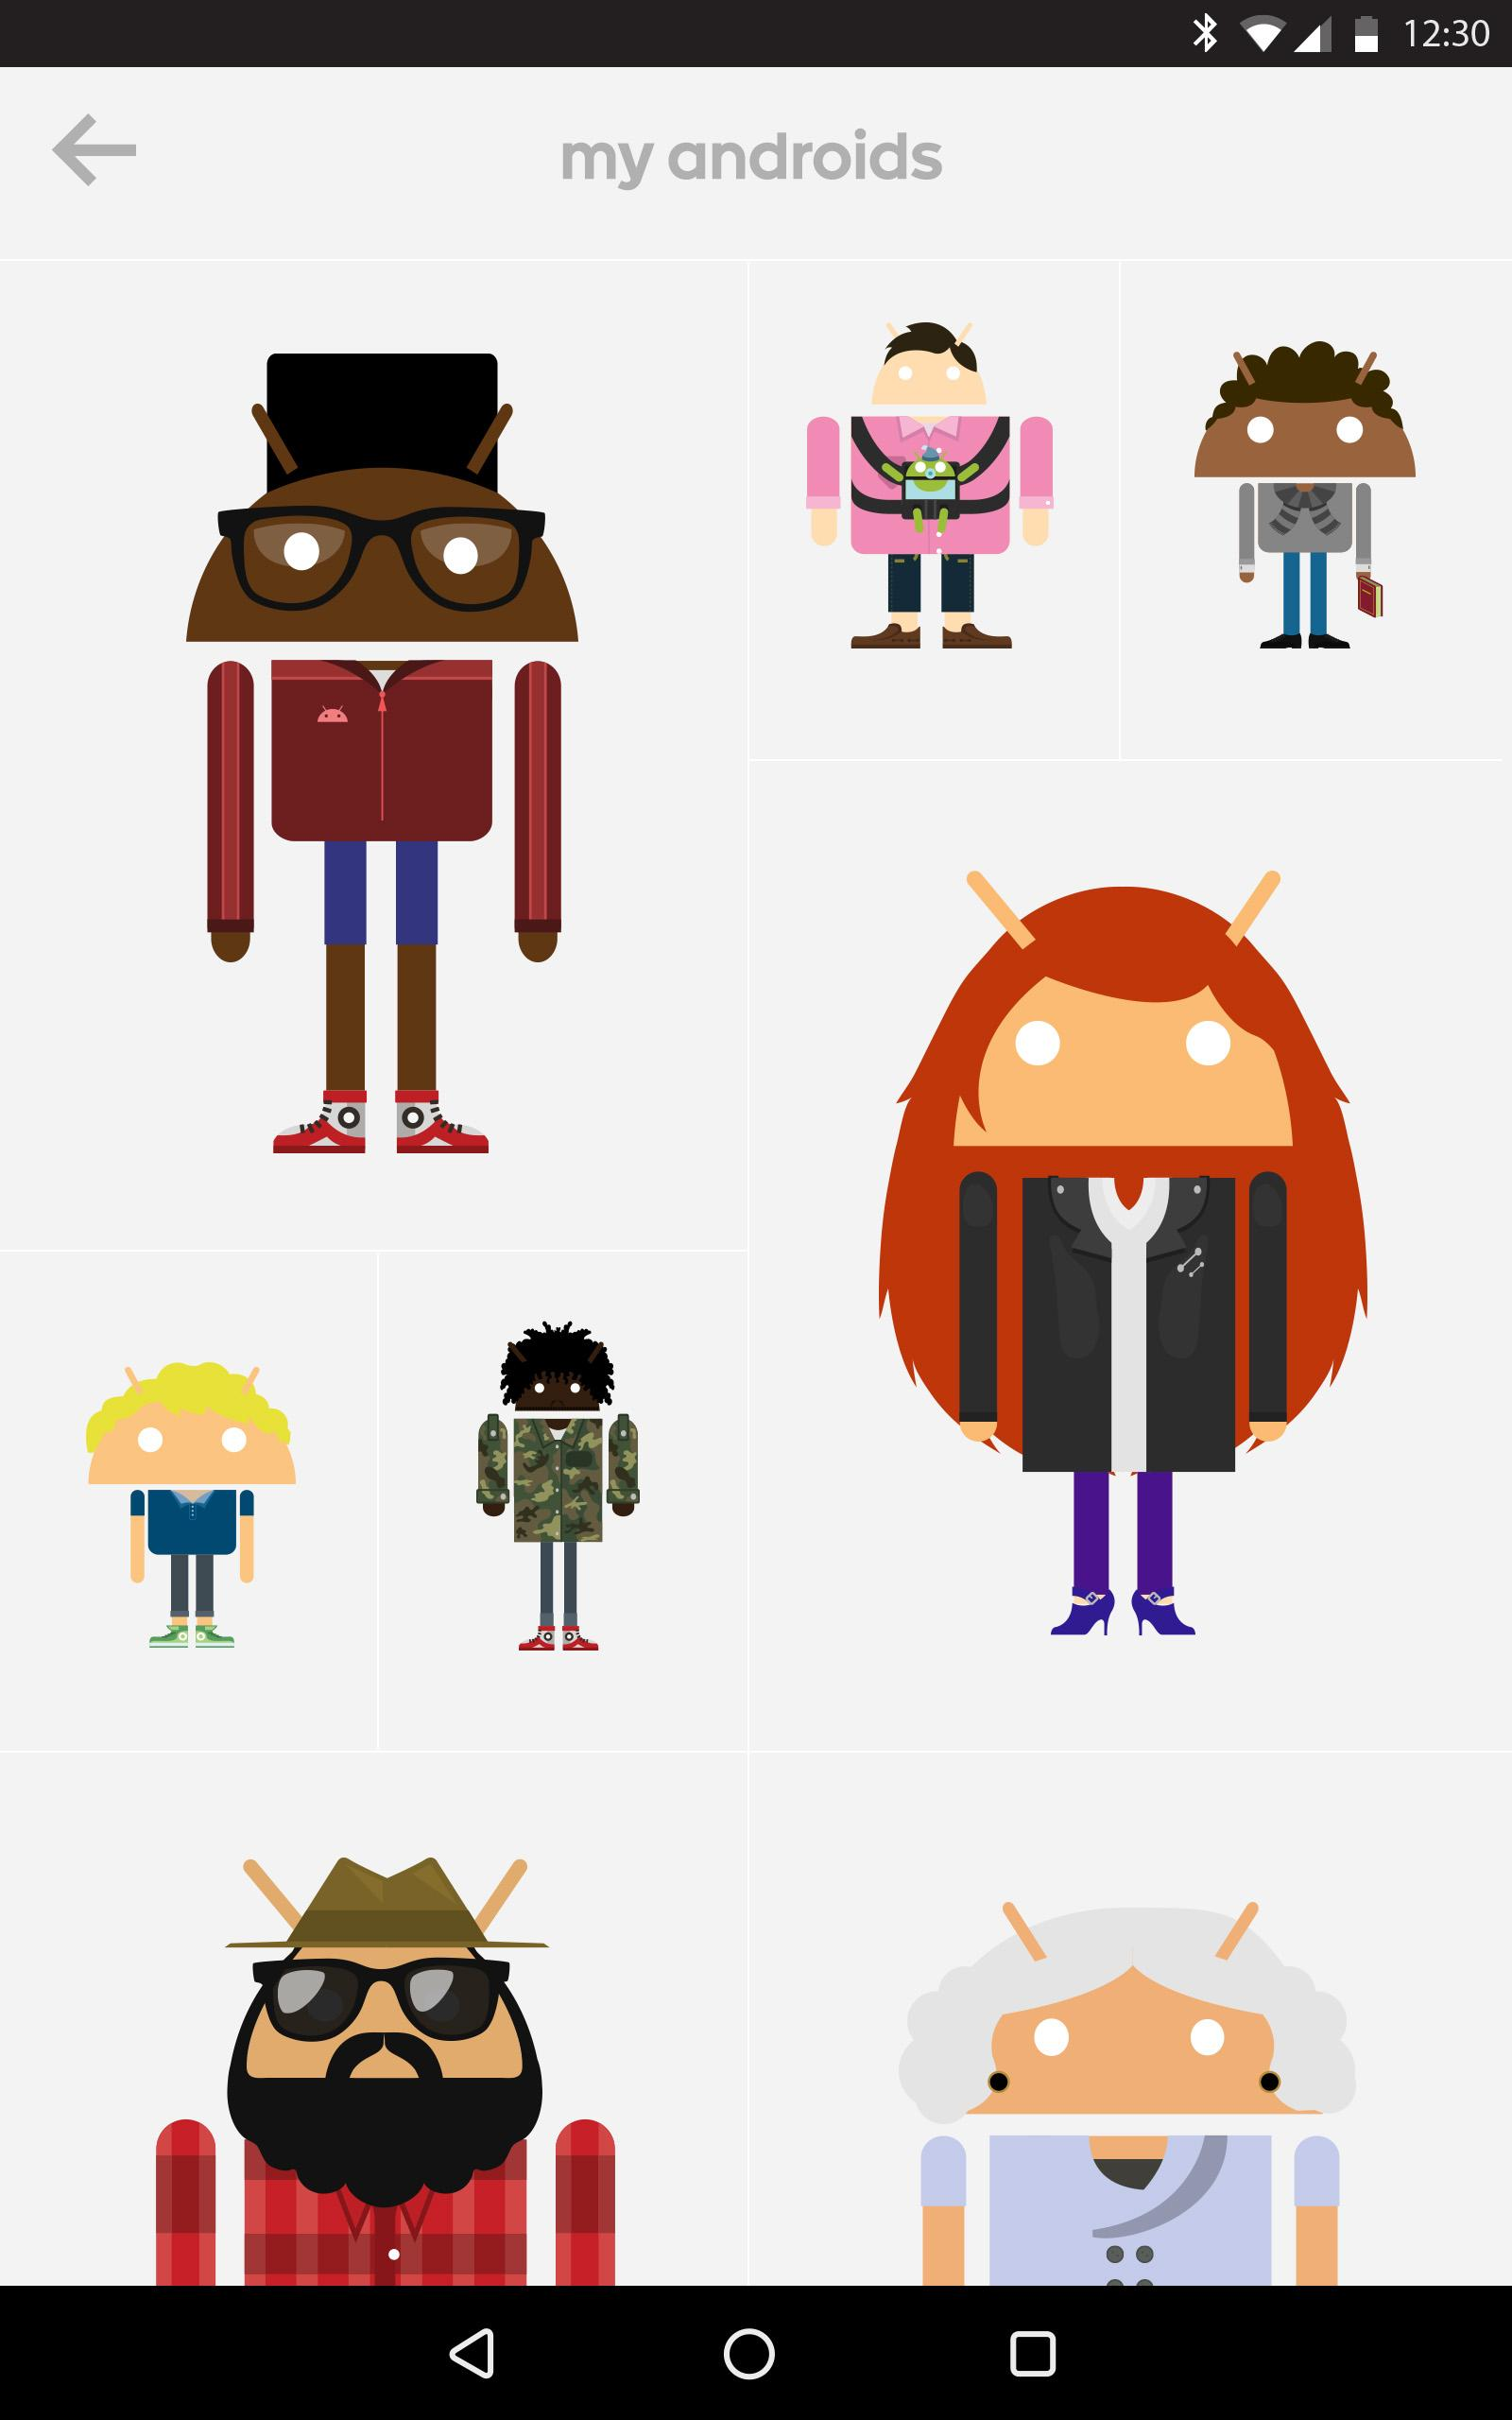 Androidify screenshot #12